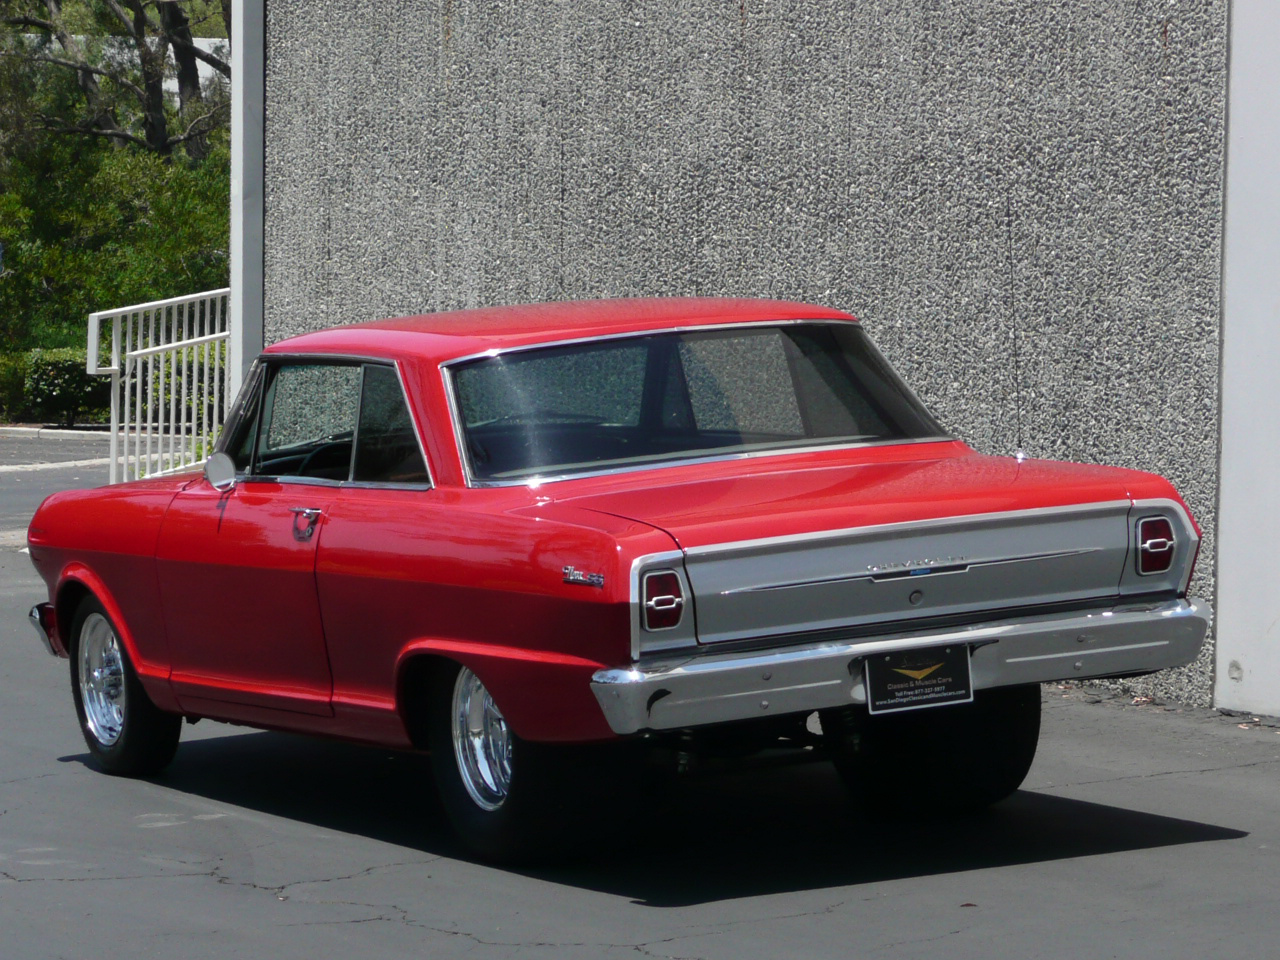 1963 CHEVROLET NOVA SS CUSTOM 2 DOOR HARDTOP - Rear 3/4 - 80989